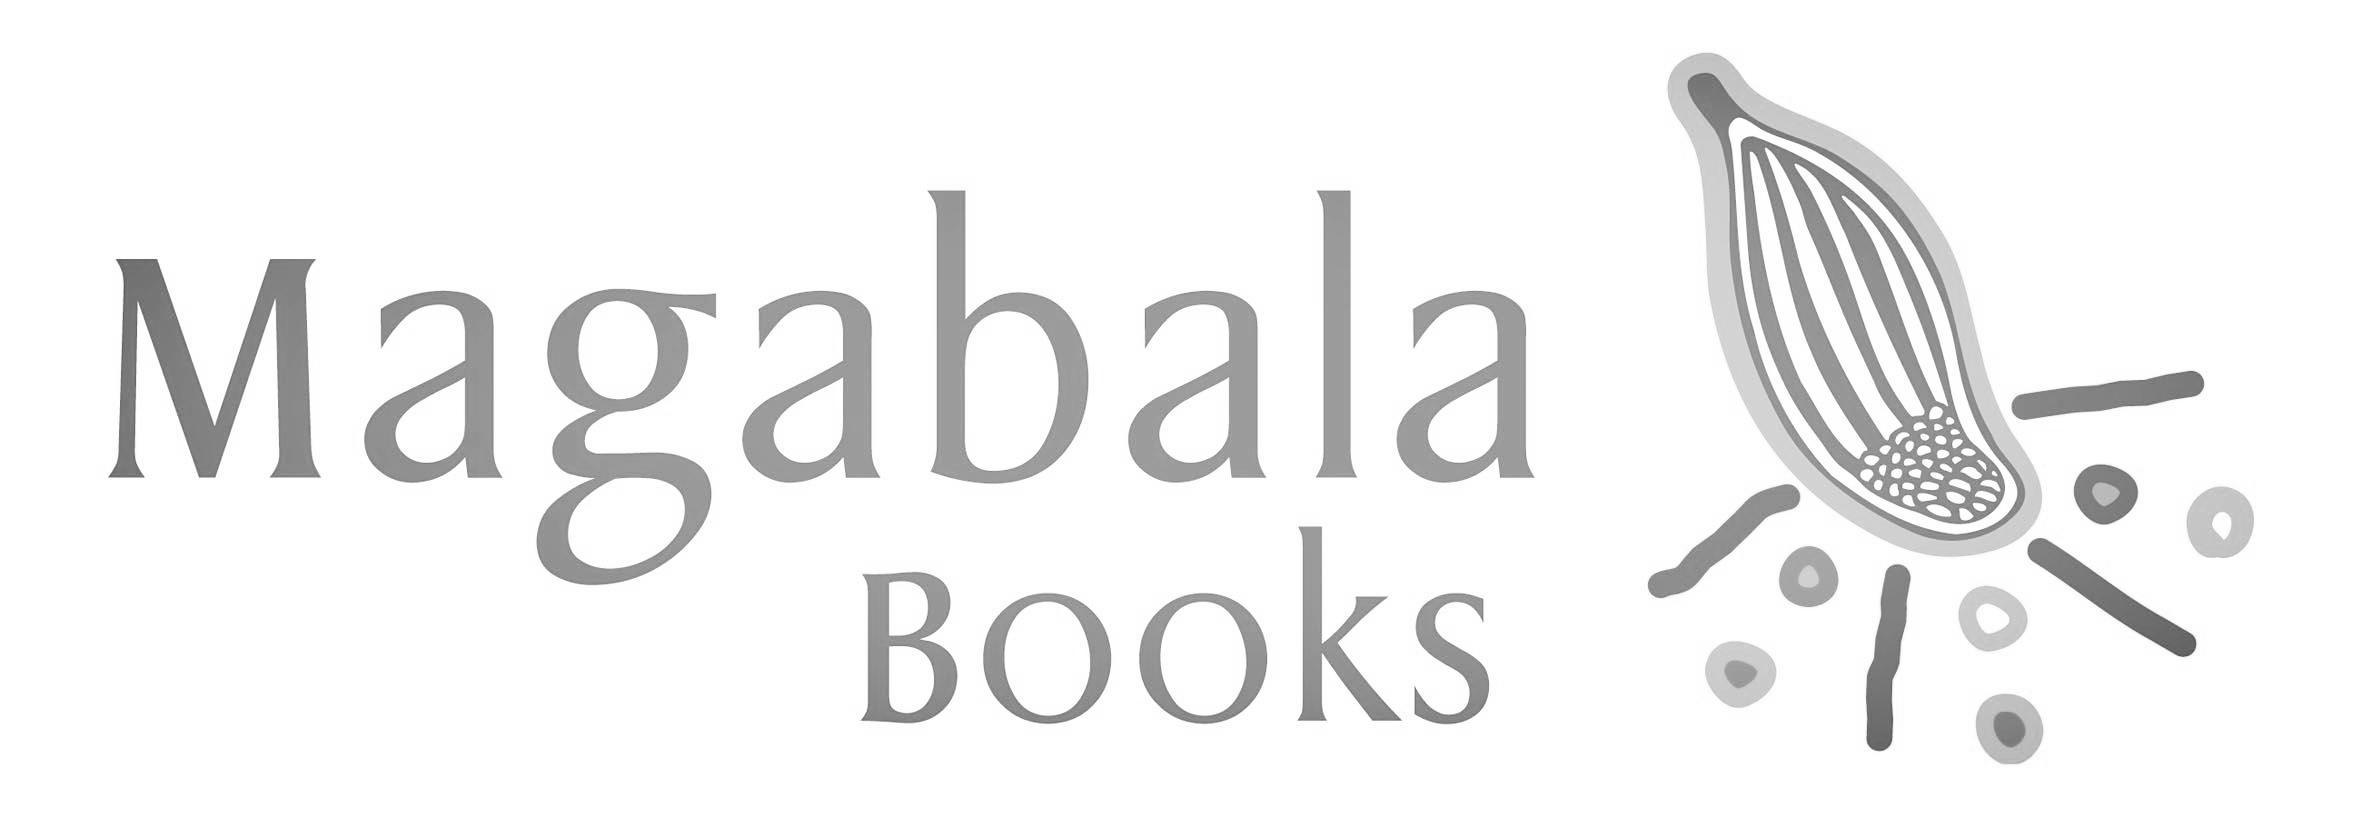 Magabala20percentBooks_horizontal_colour.jpeg